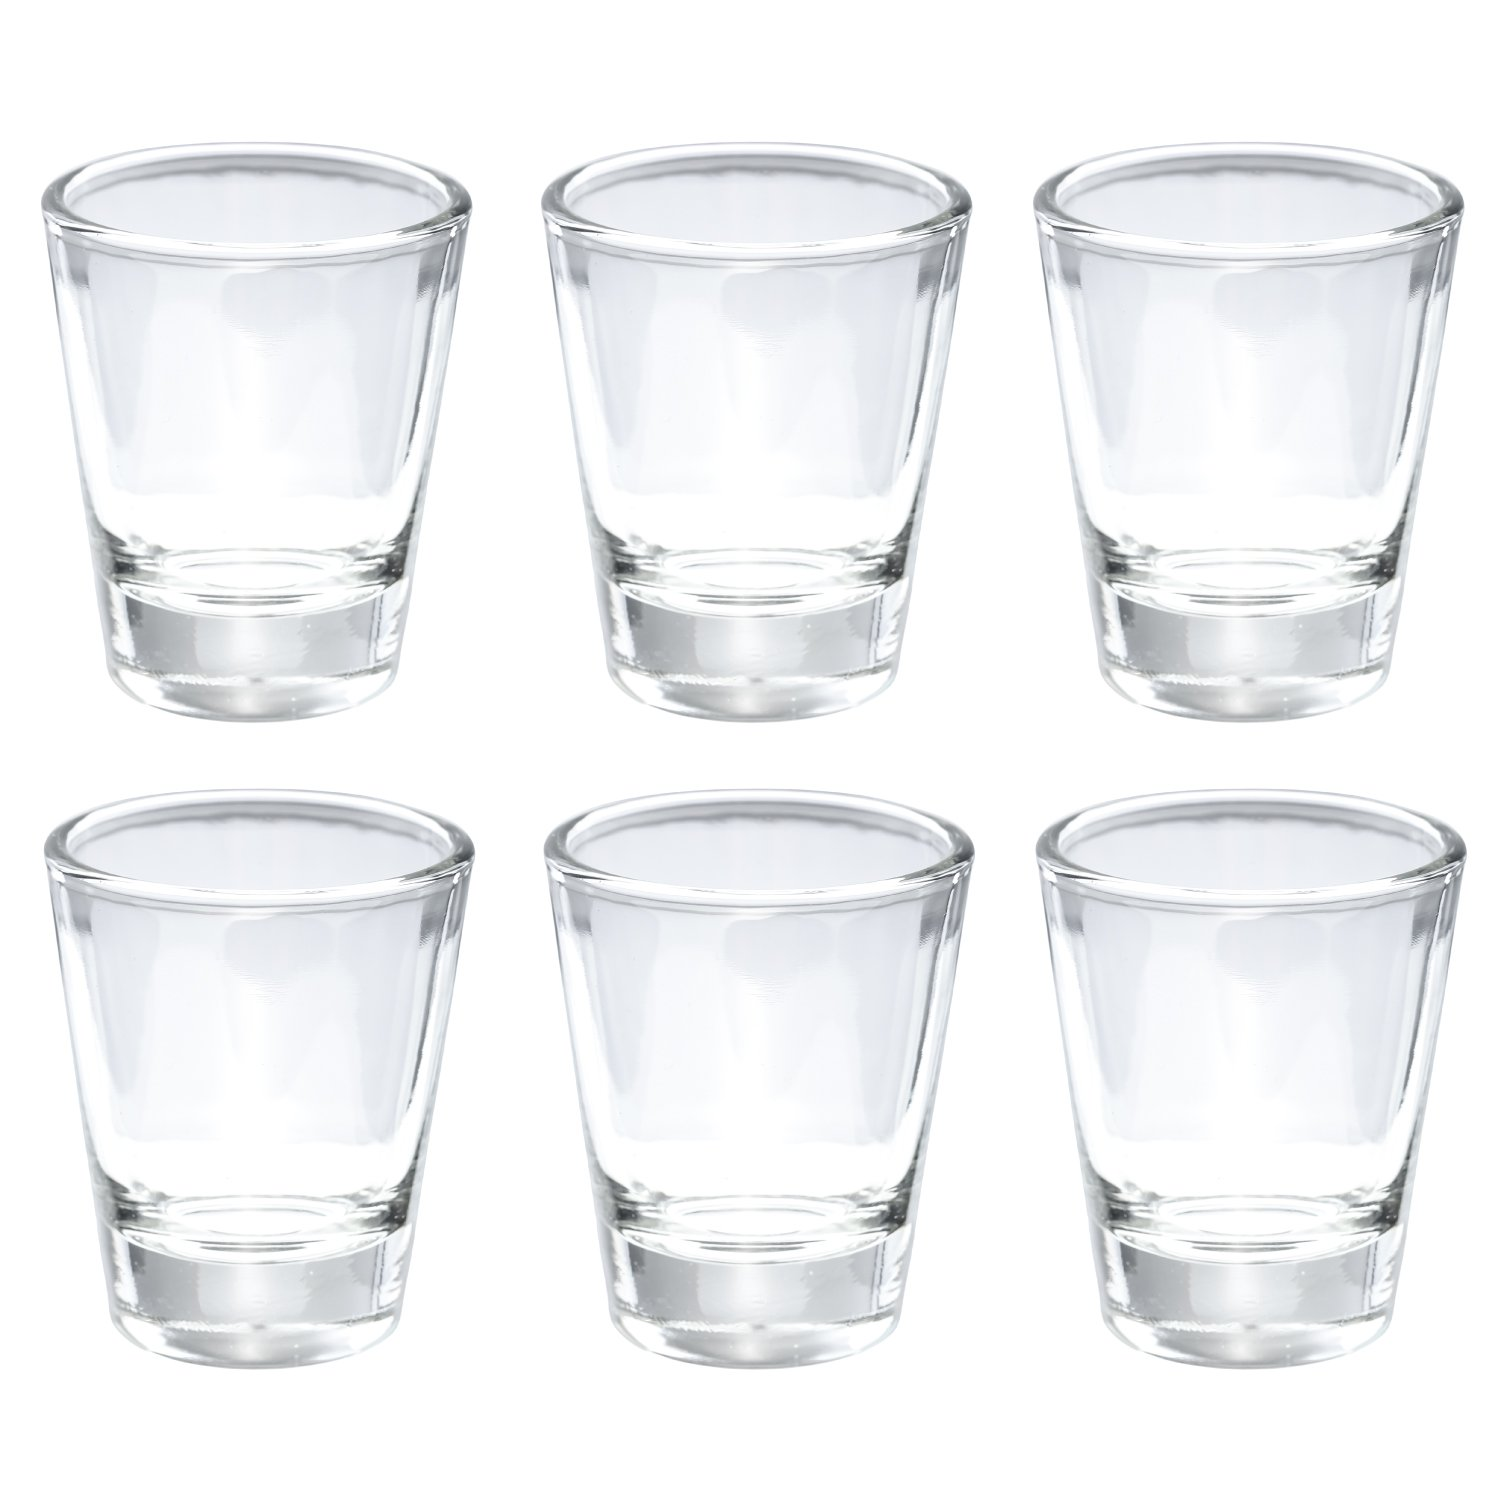 Thirsty Rhino Karan, Round 1.5 oz Shot Glass with Heavy Base, Clear Glass, Set of 6 by Thirsty Rhino